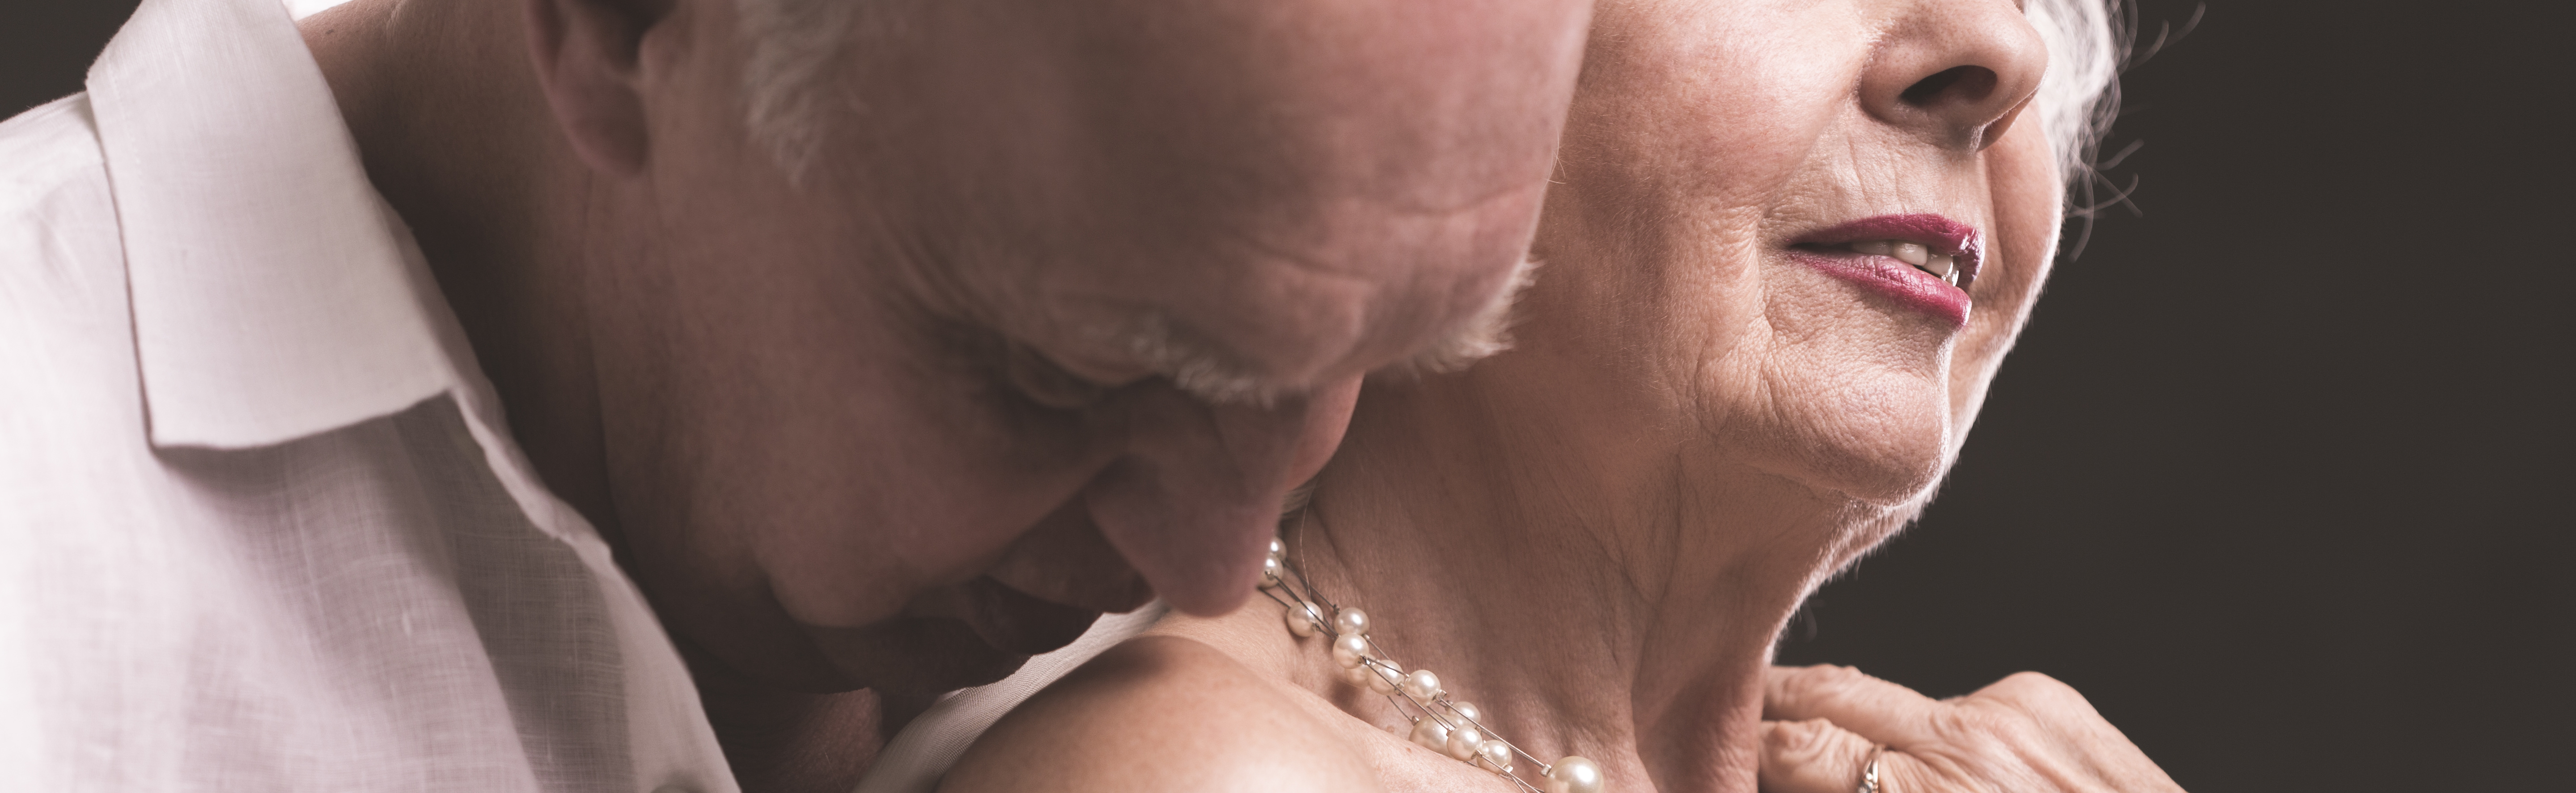 Aging, Relationships & Sex